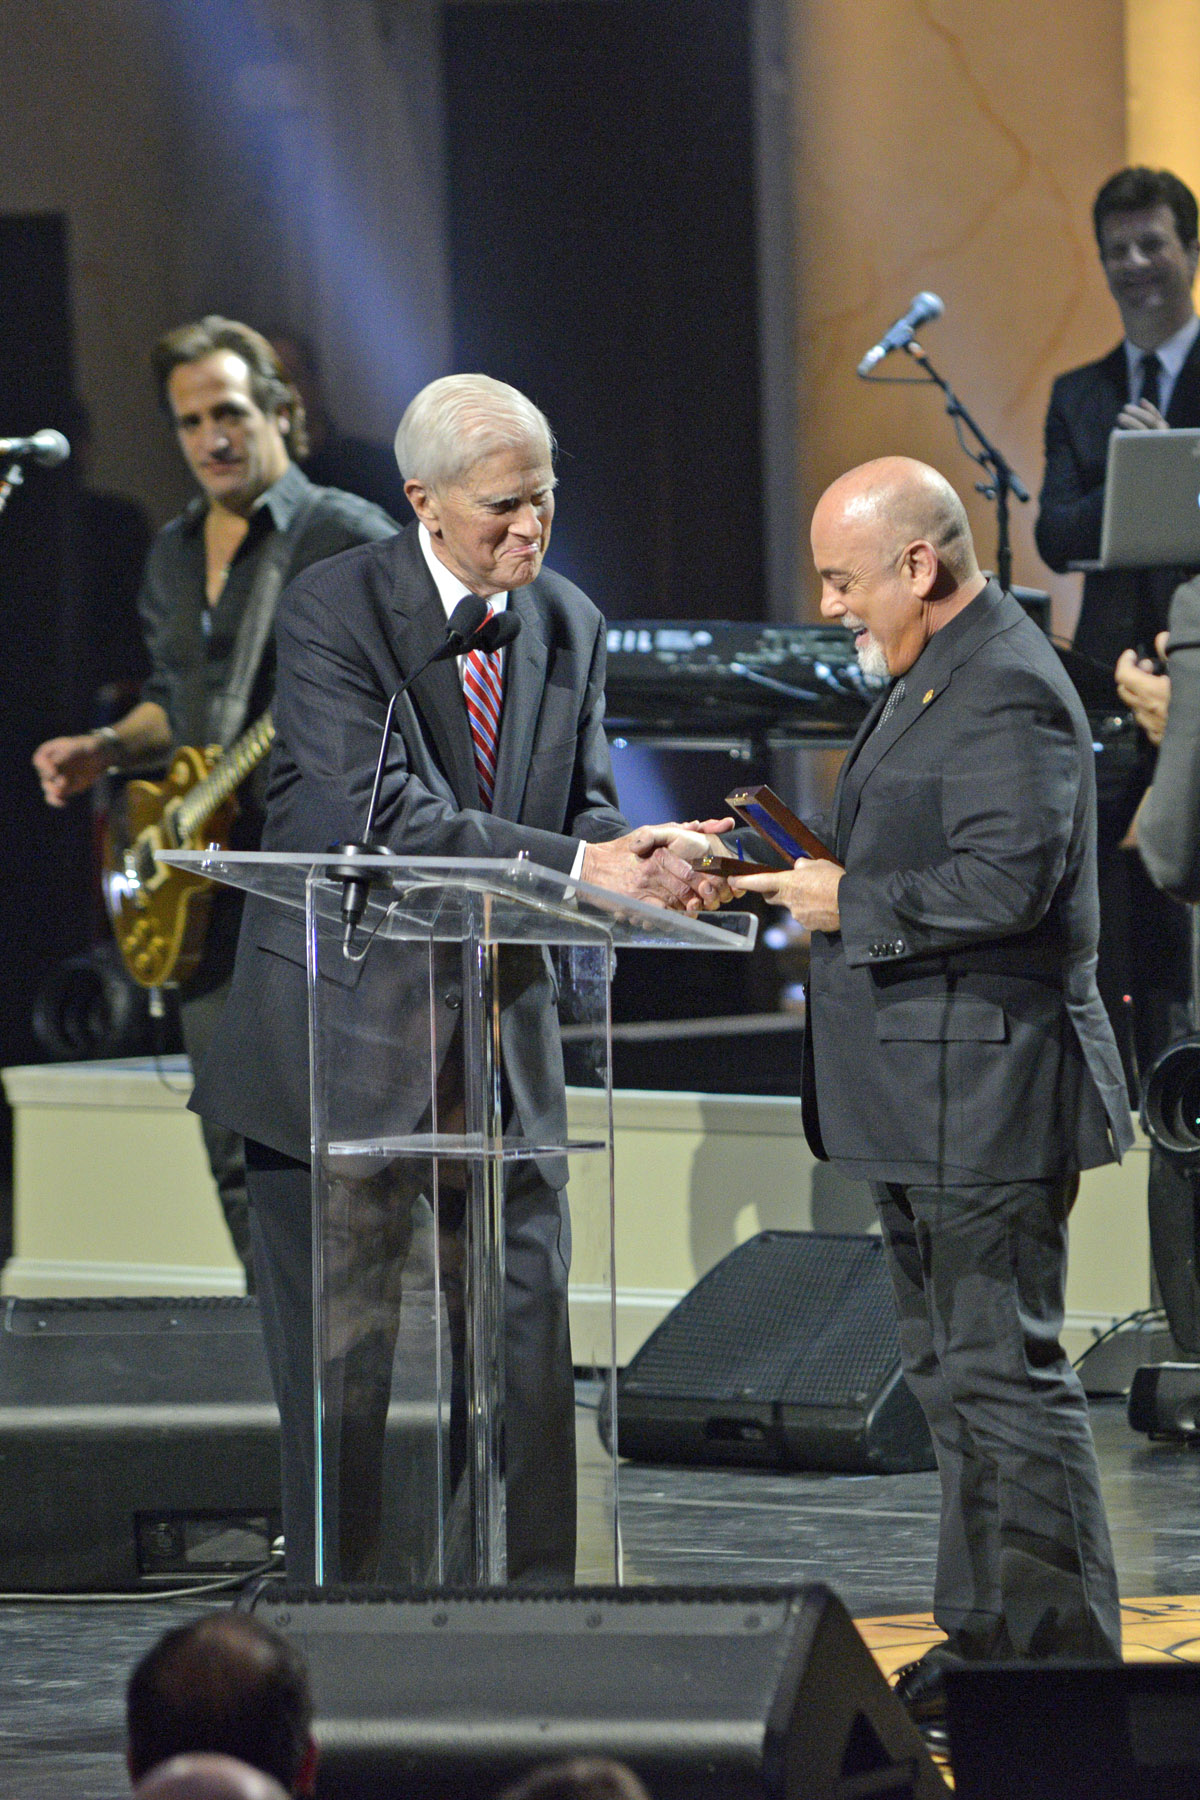 Librarian of Congress Dr. James Billington presents Billy Joel with the Library of Congress Gershwin Prize for Popular Song, November 19, 2014. (Photo: Shawn Miller)